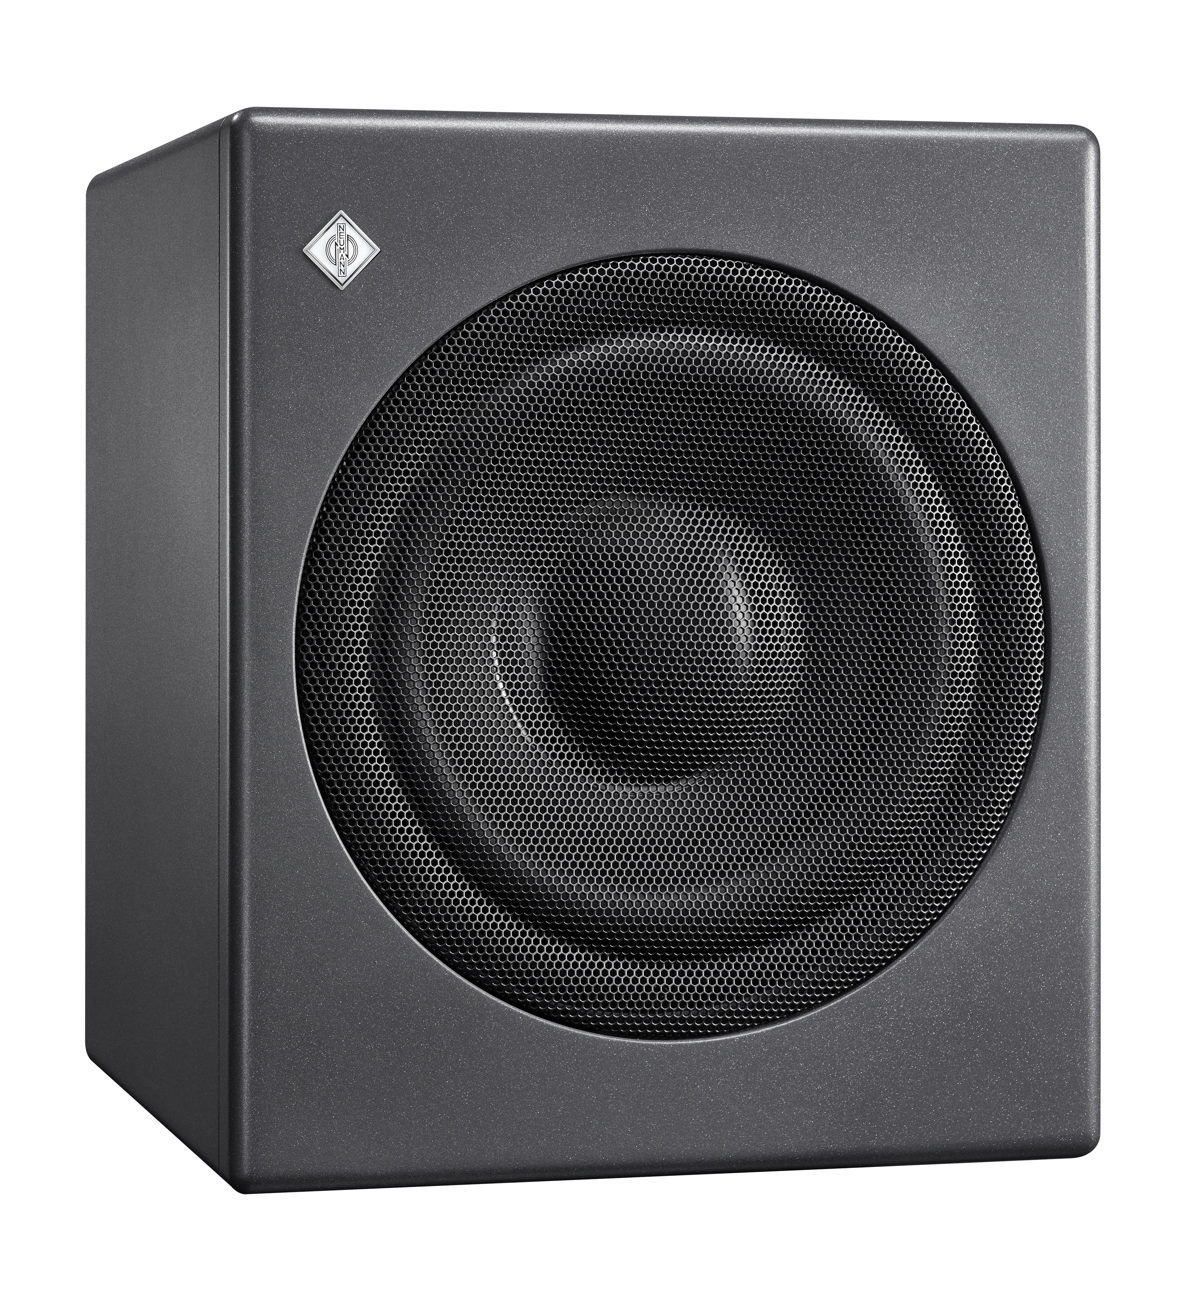 The new KH 750 DSP is a particularly compact subwoofer for broadcast, music and post production studios